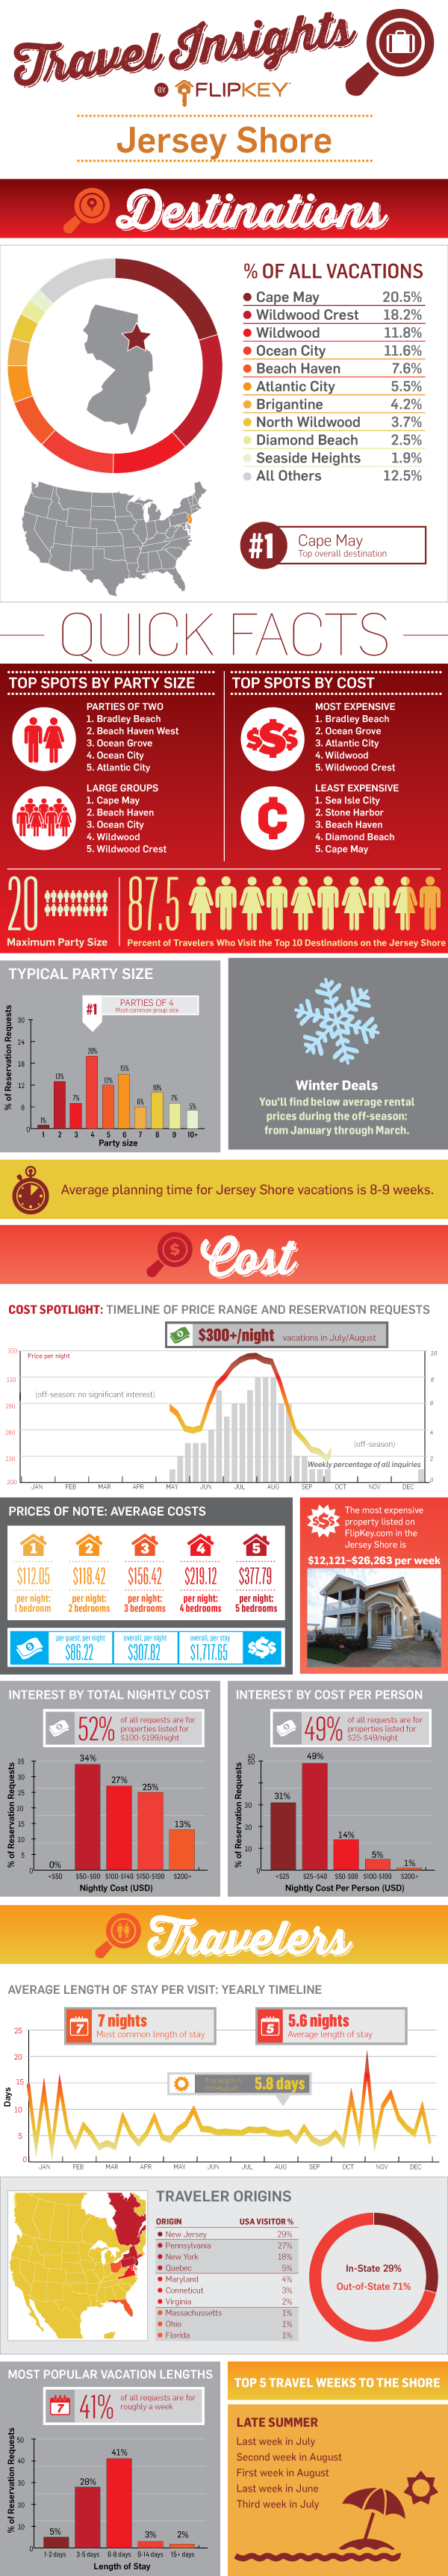 Jersey Shore Travel Insights Infographic